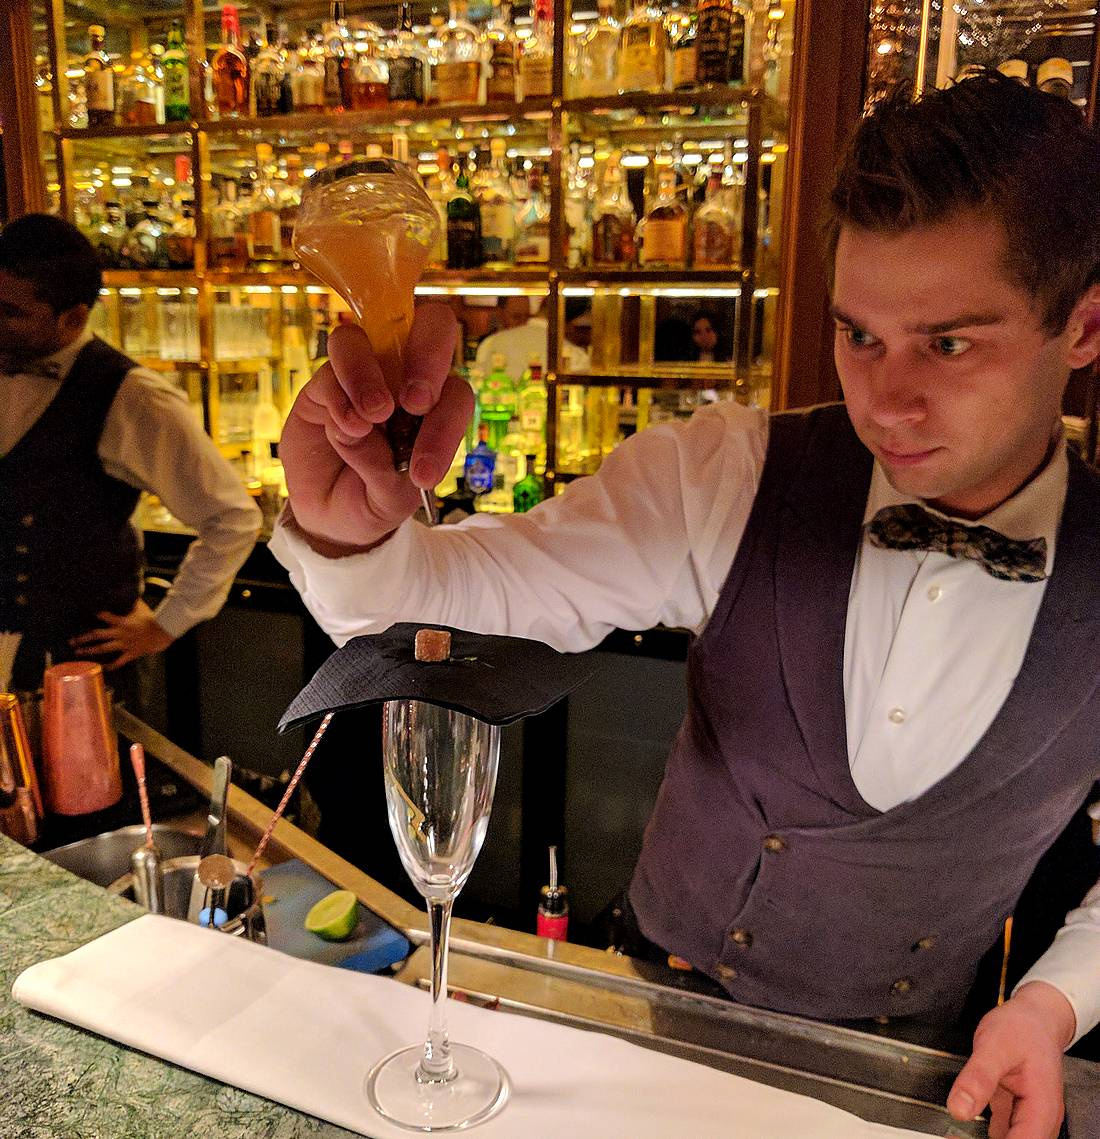 Mixologist Mantas Ignatavicius of the K Bra in The Kensington, a Doyle hotel in London